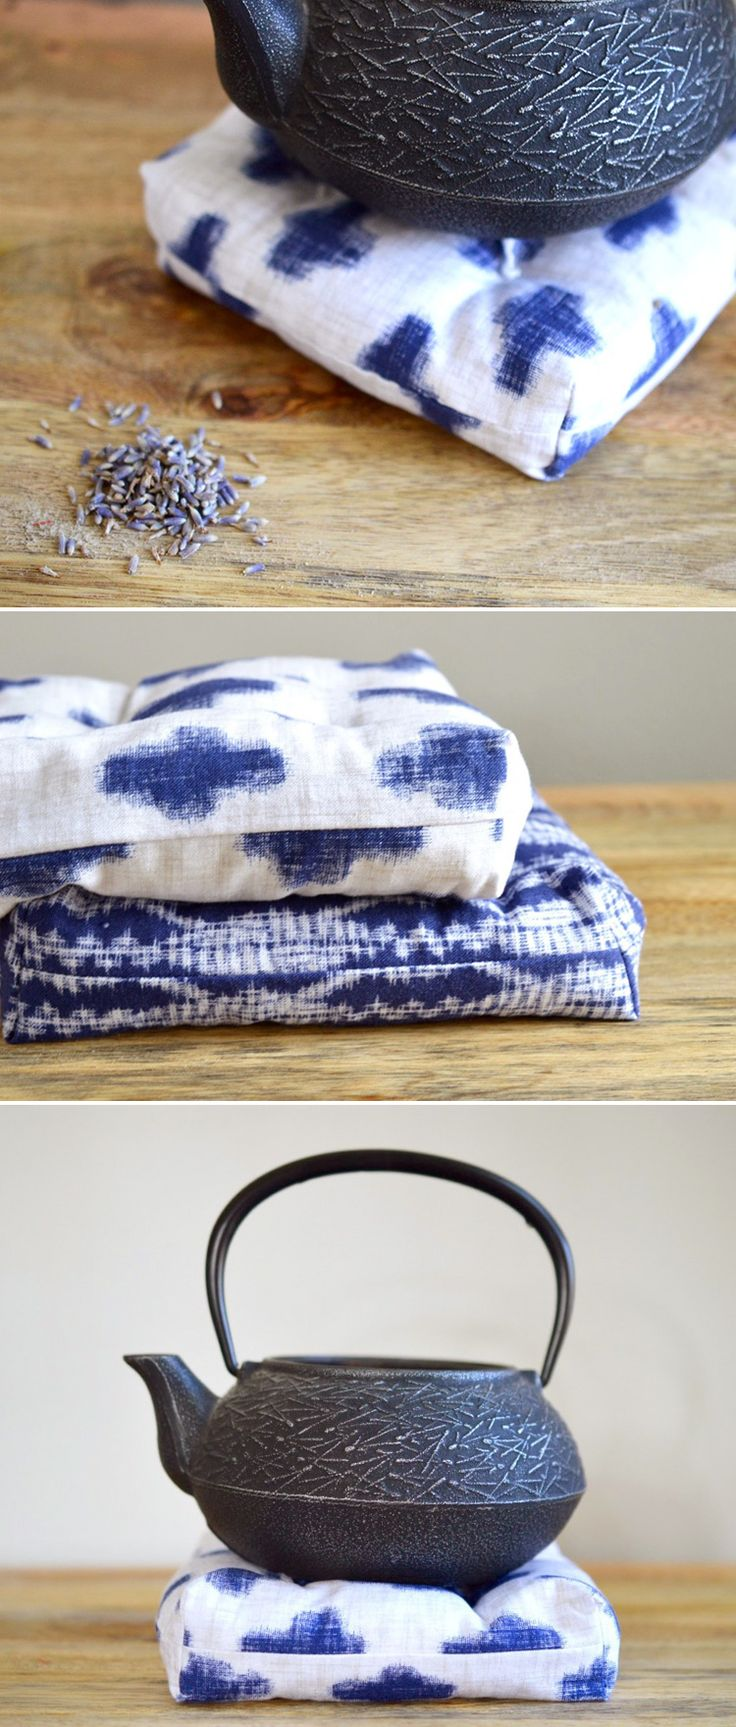 Sew a Scented Tea Trivet – The Perfect Gift for a Tea Lover